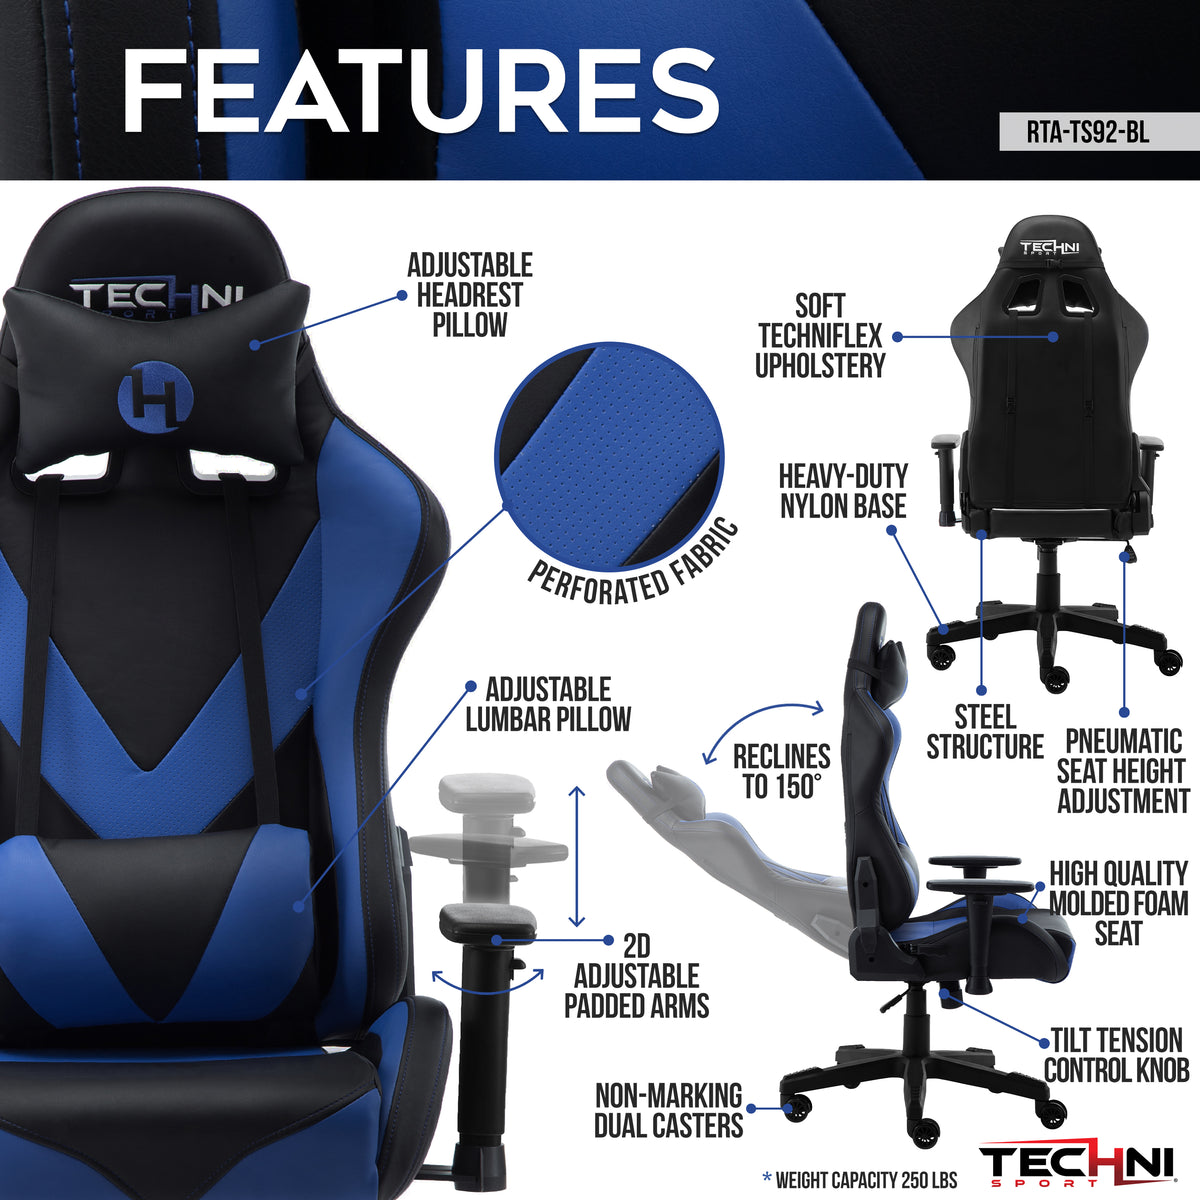 Techni Sport TS-92 Office-PC Gaming Chair, Blue